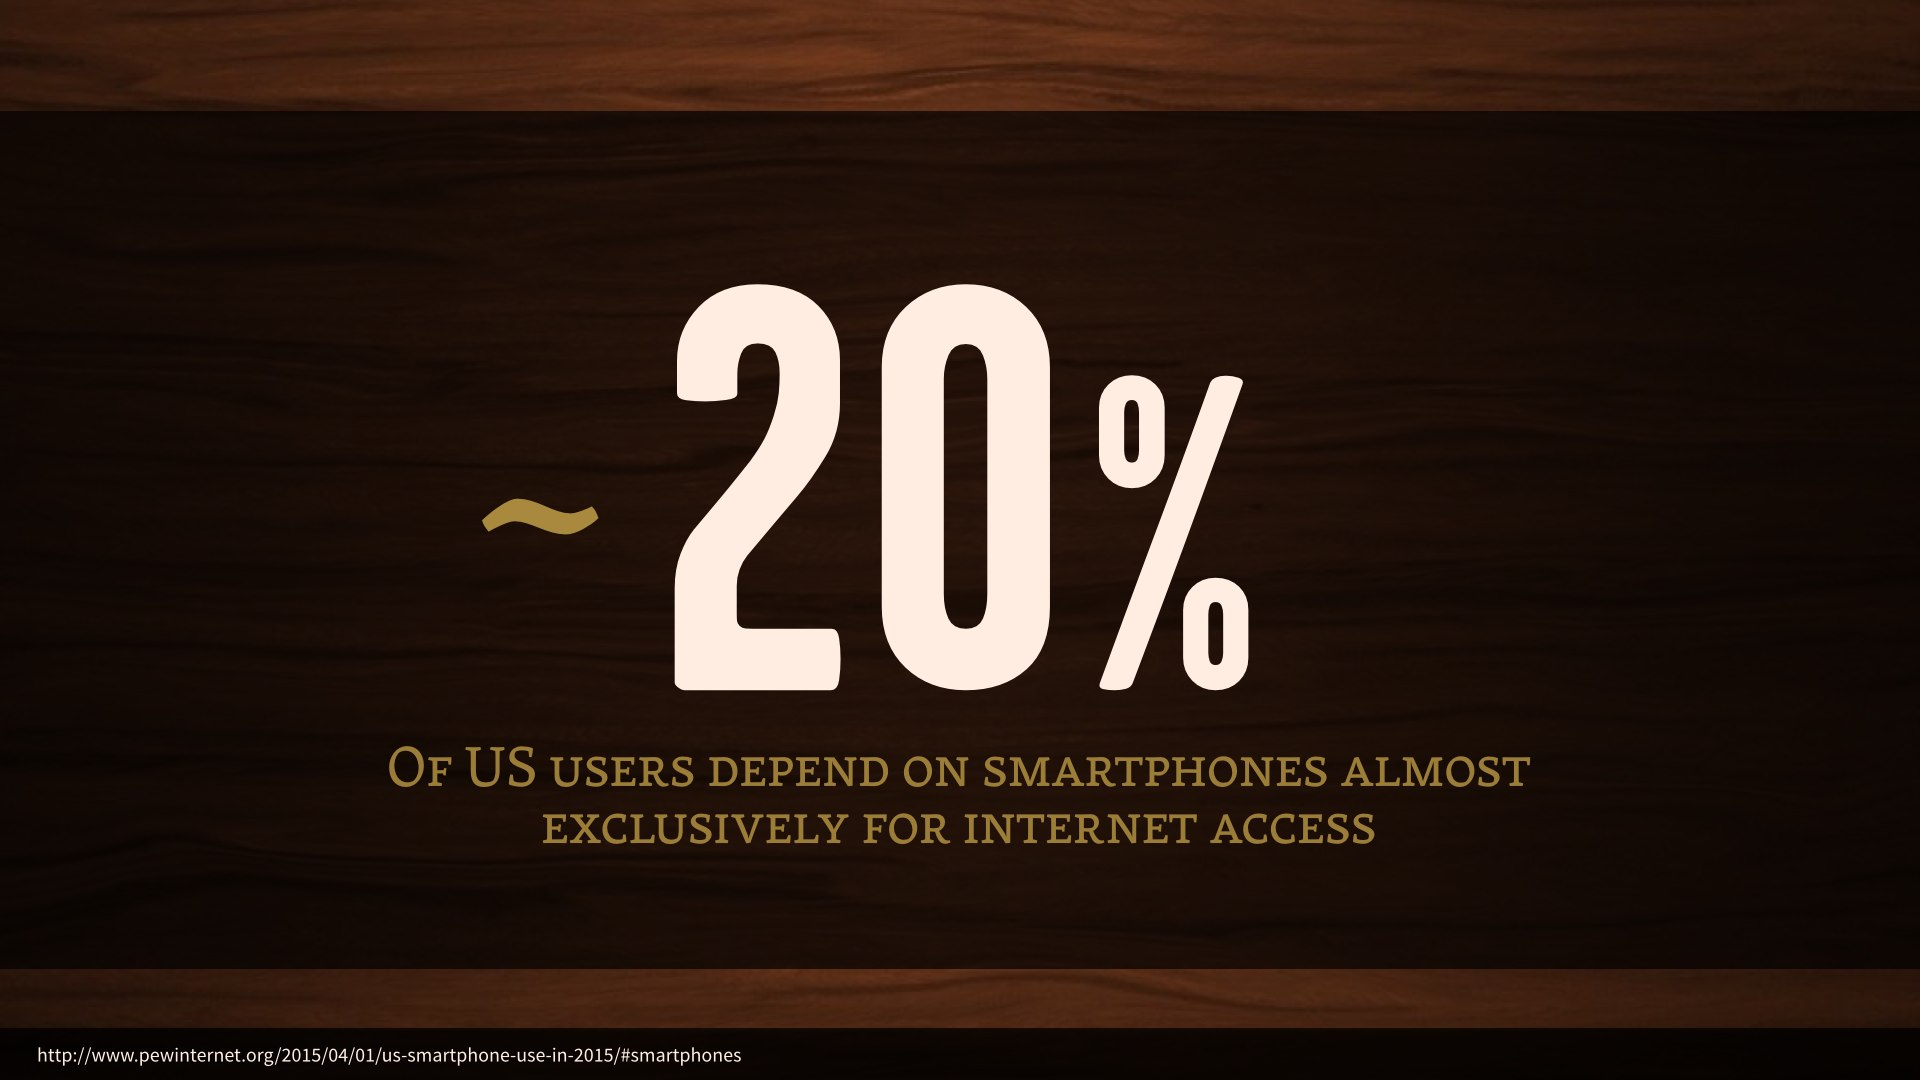 Roughly 20% of US users depend on smartphones almost exclusively for internet access